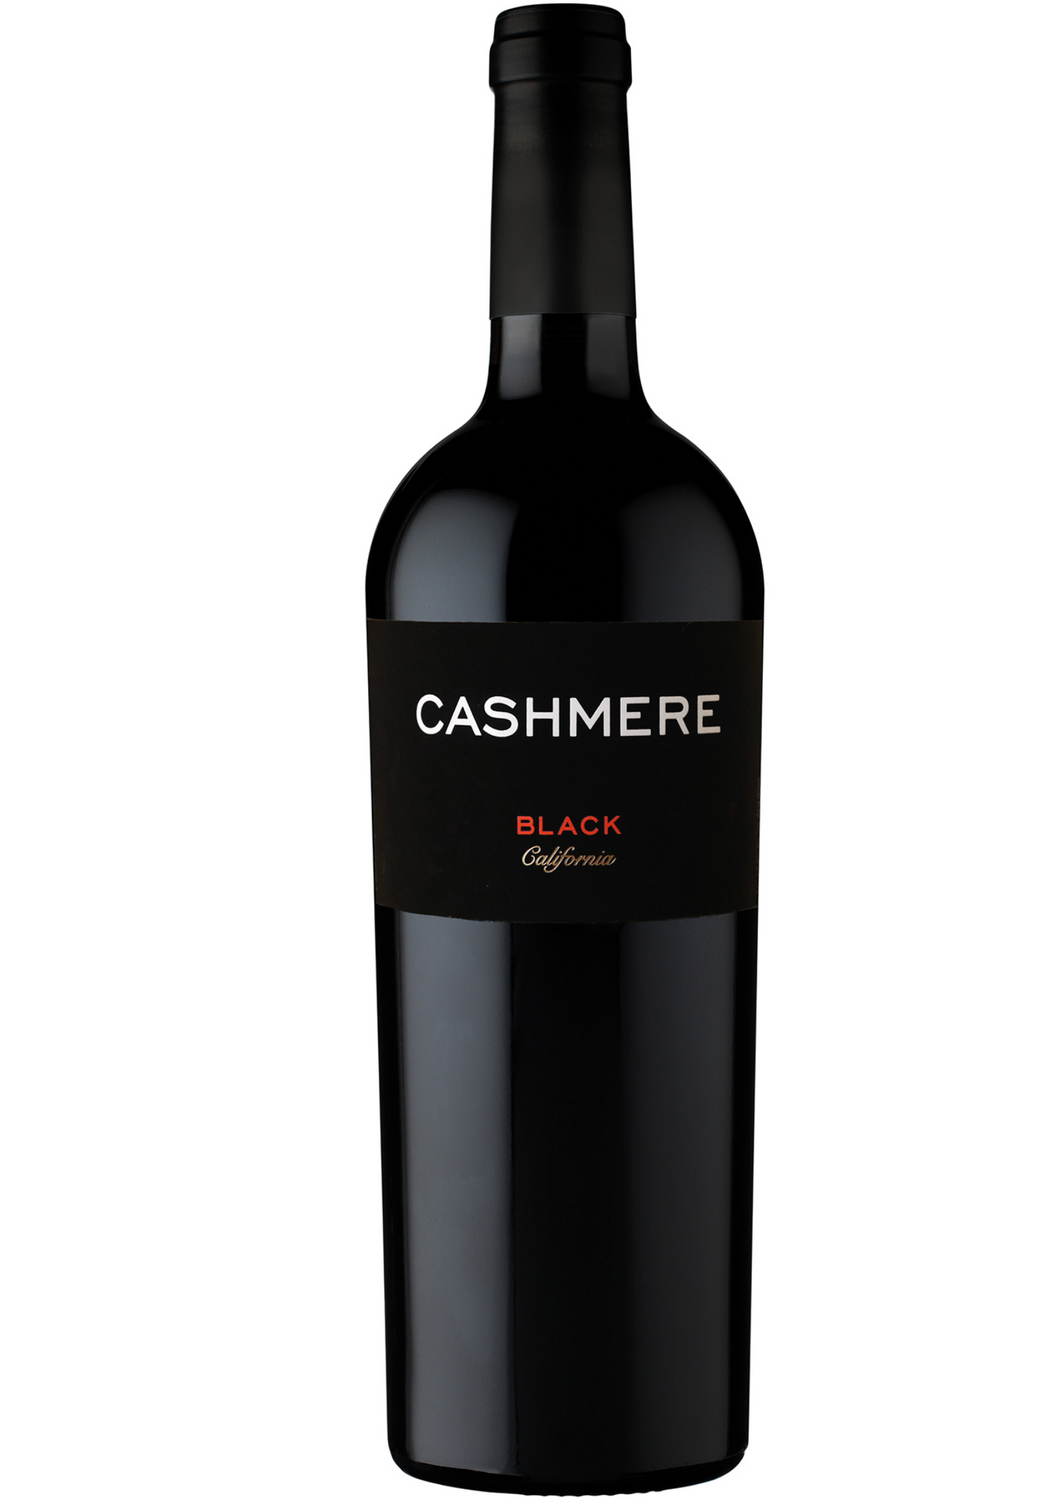 2016 CASHMERE BLACK MAGIC CALIFORNIA RED, CLINE CELLARS - Vine0nline